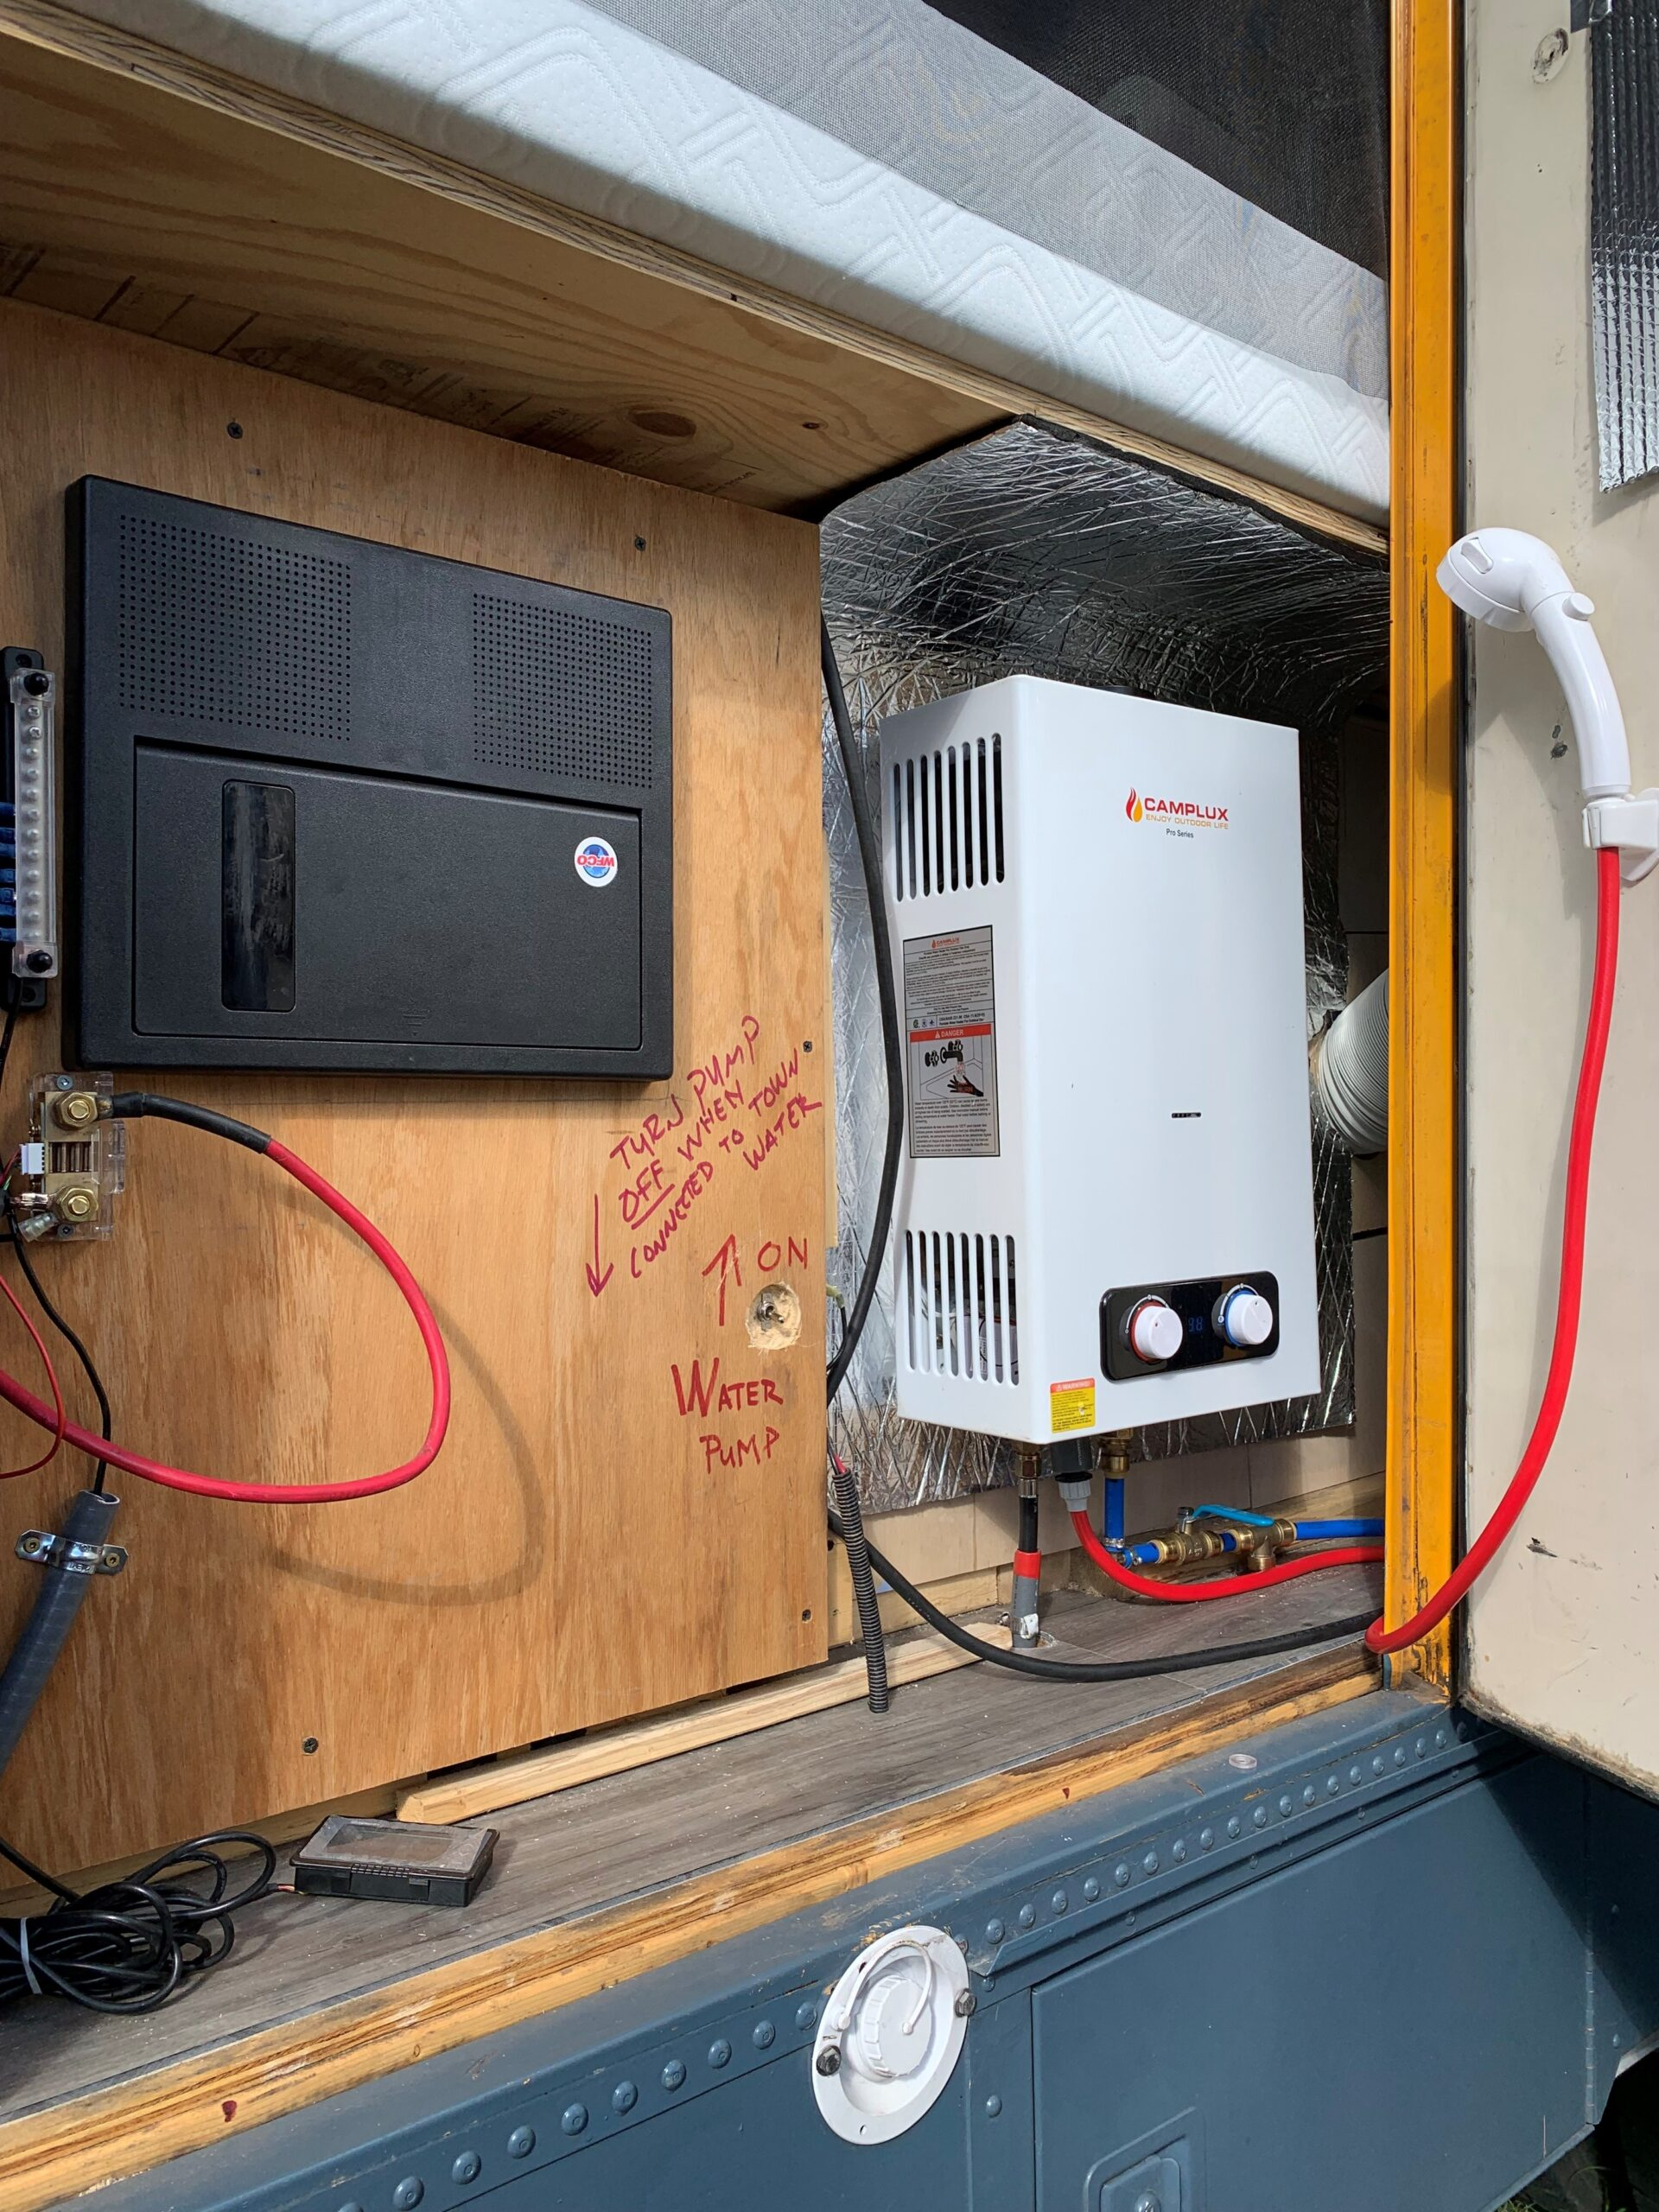 Service panel and water heater